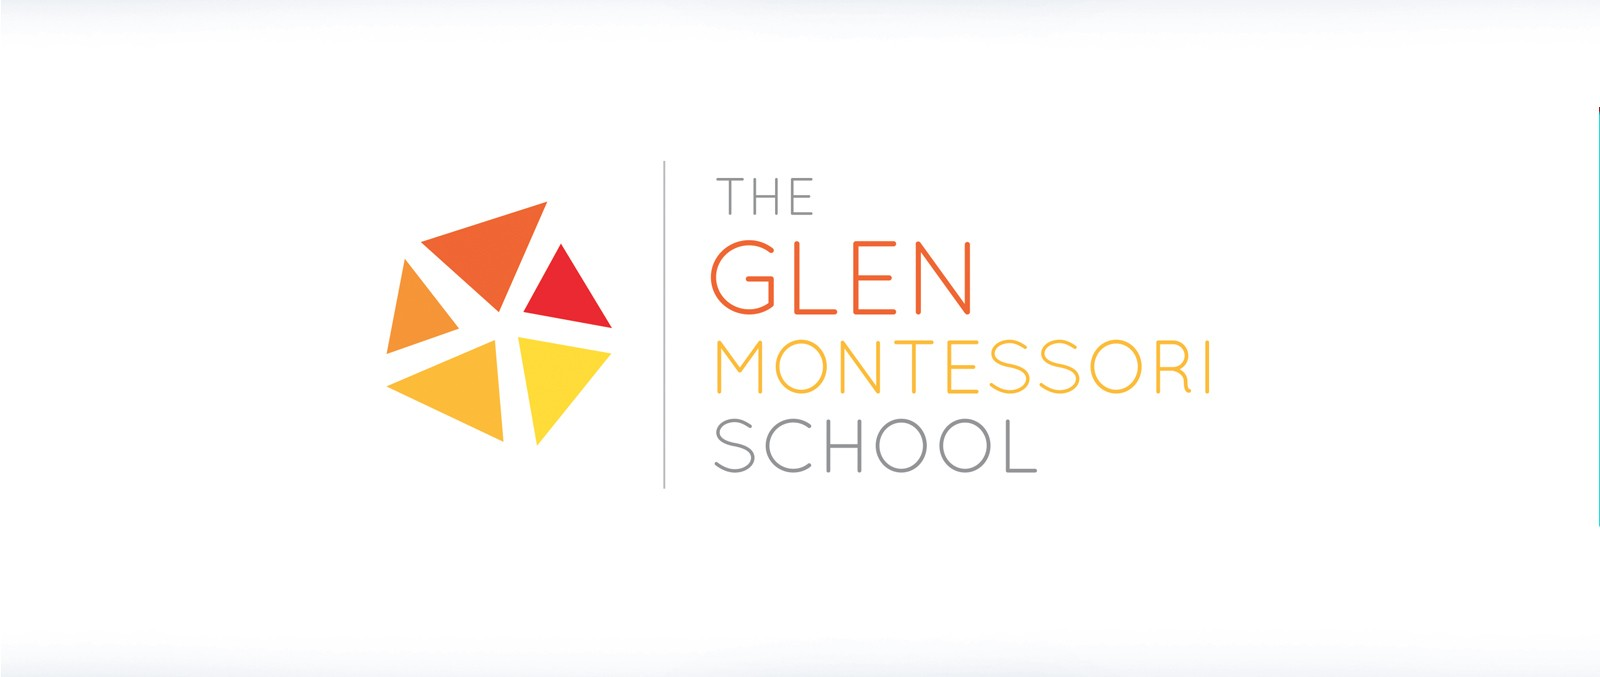 The Glen Montessori School